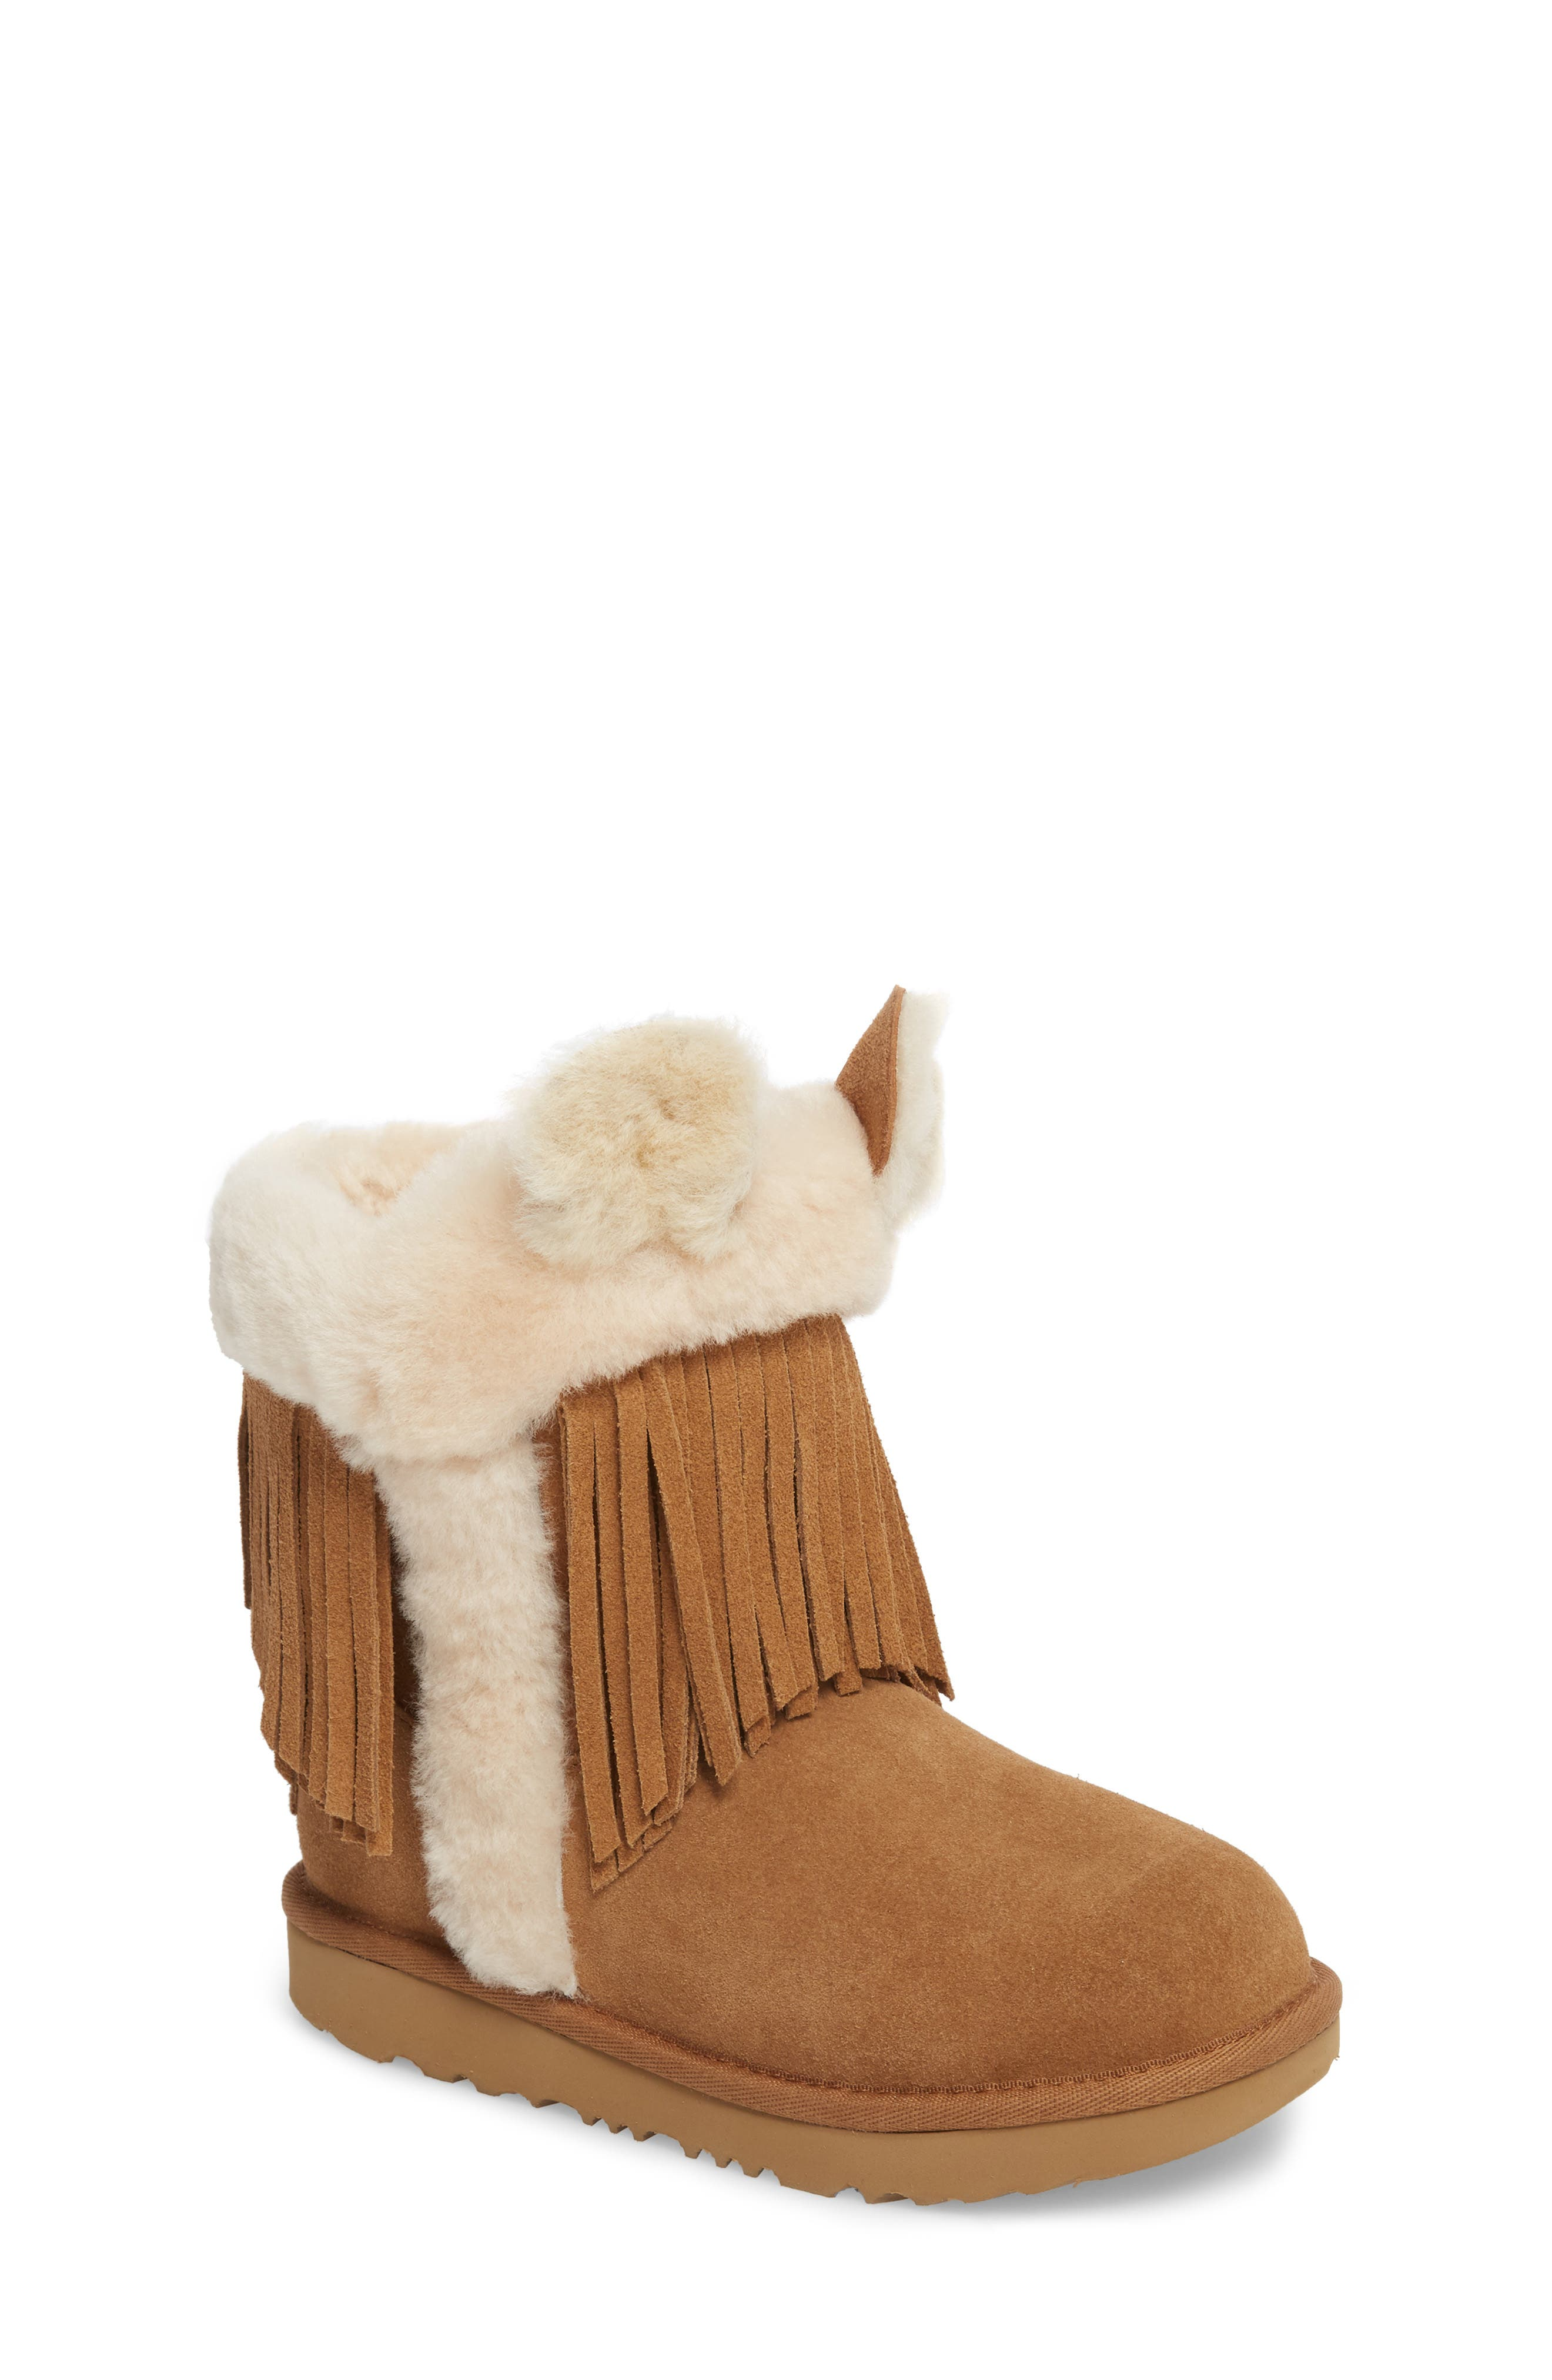 Darlala Classic II Genuine Shearling Boot,                         Main,                         color, CHESTNUT